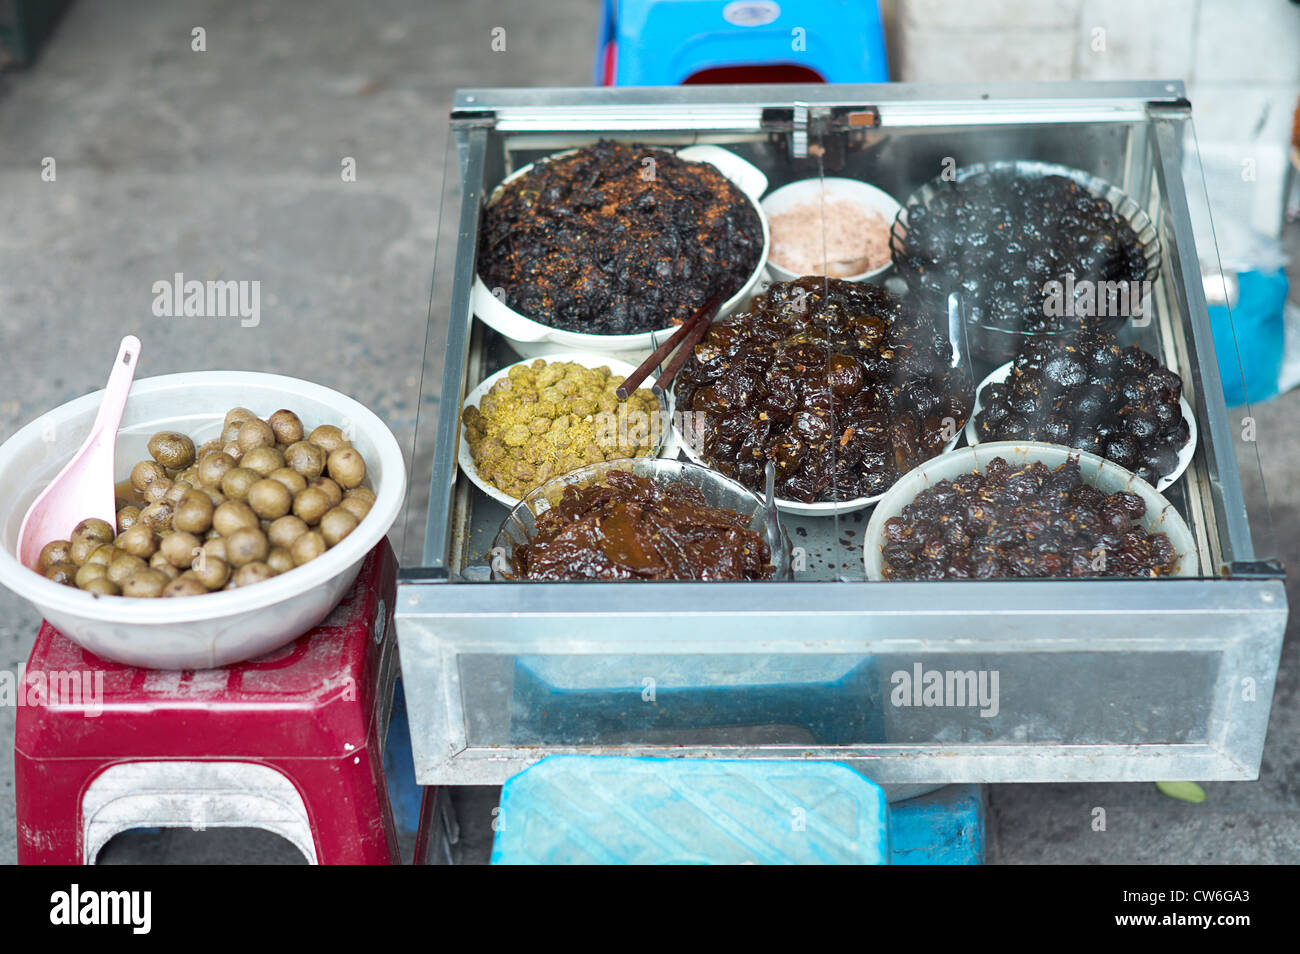 A variety of dried and preserved fruits on display by a street vendor - Stock Image